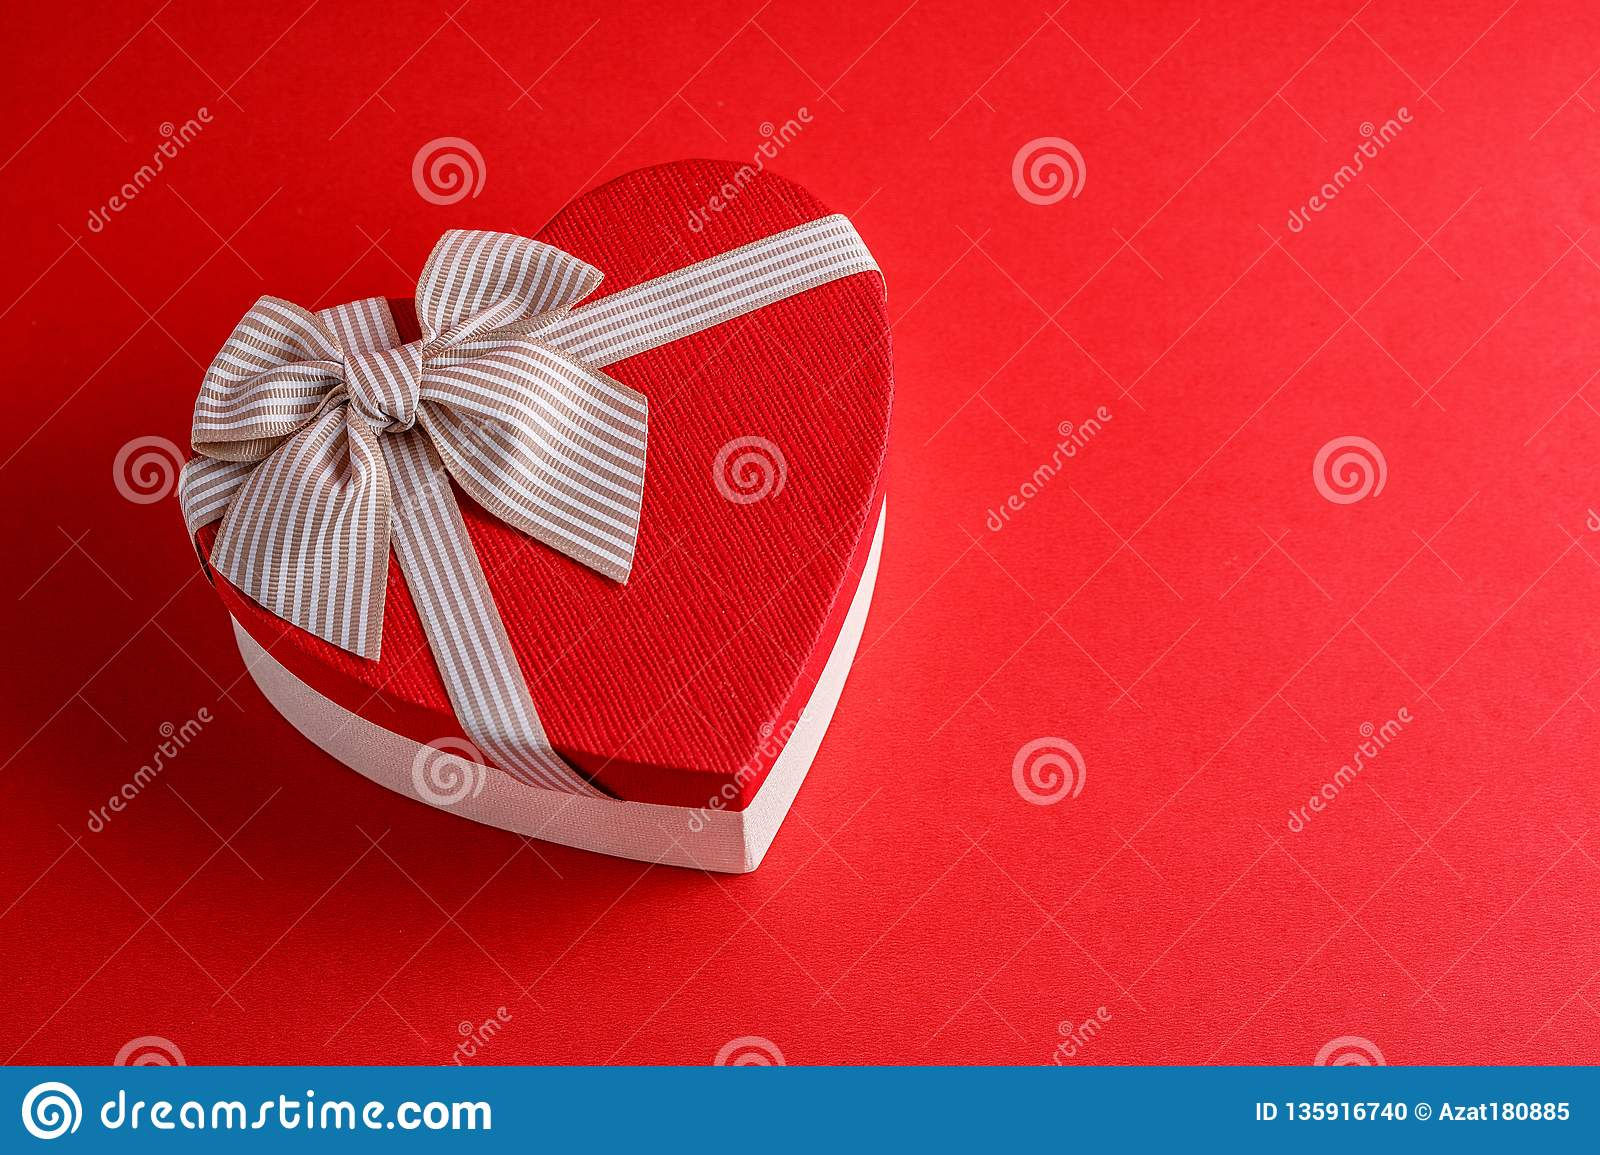 Gift box in the shape of a heart with a ribbon on a red background. The concept is suitable for love stories, birthdays and Valent